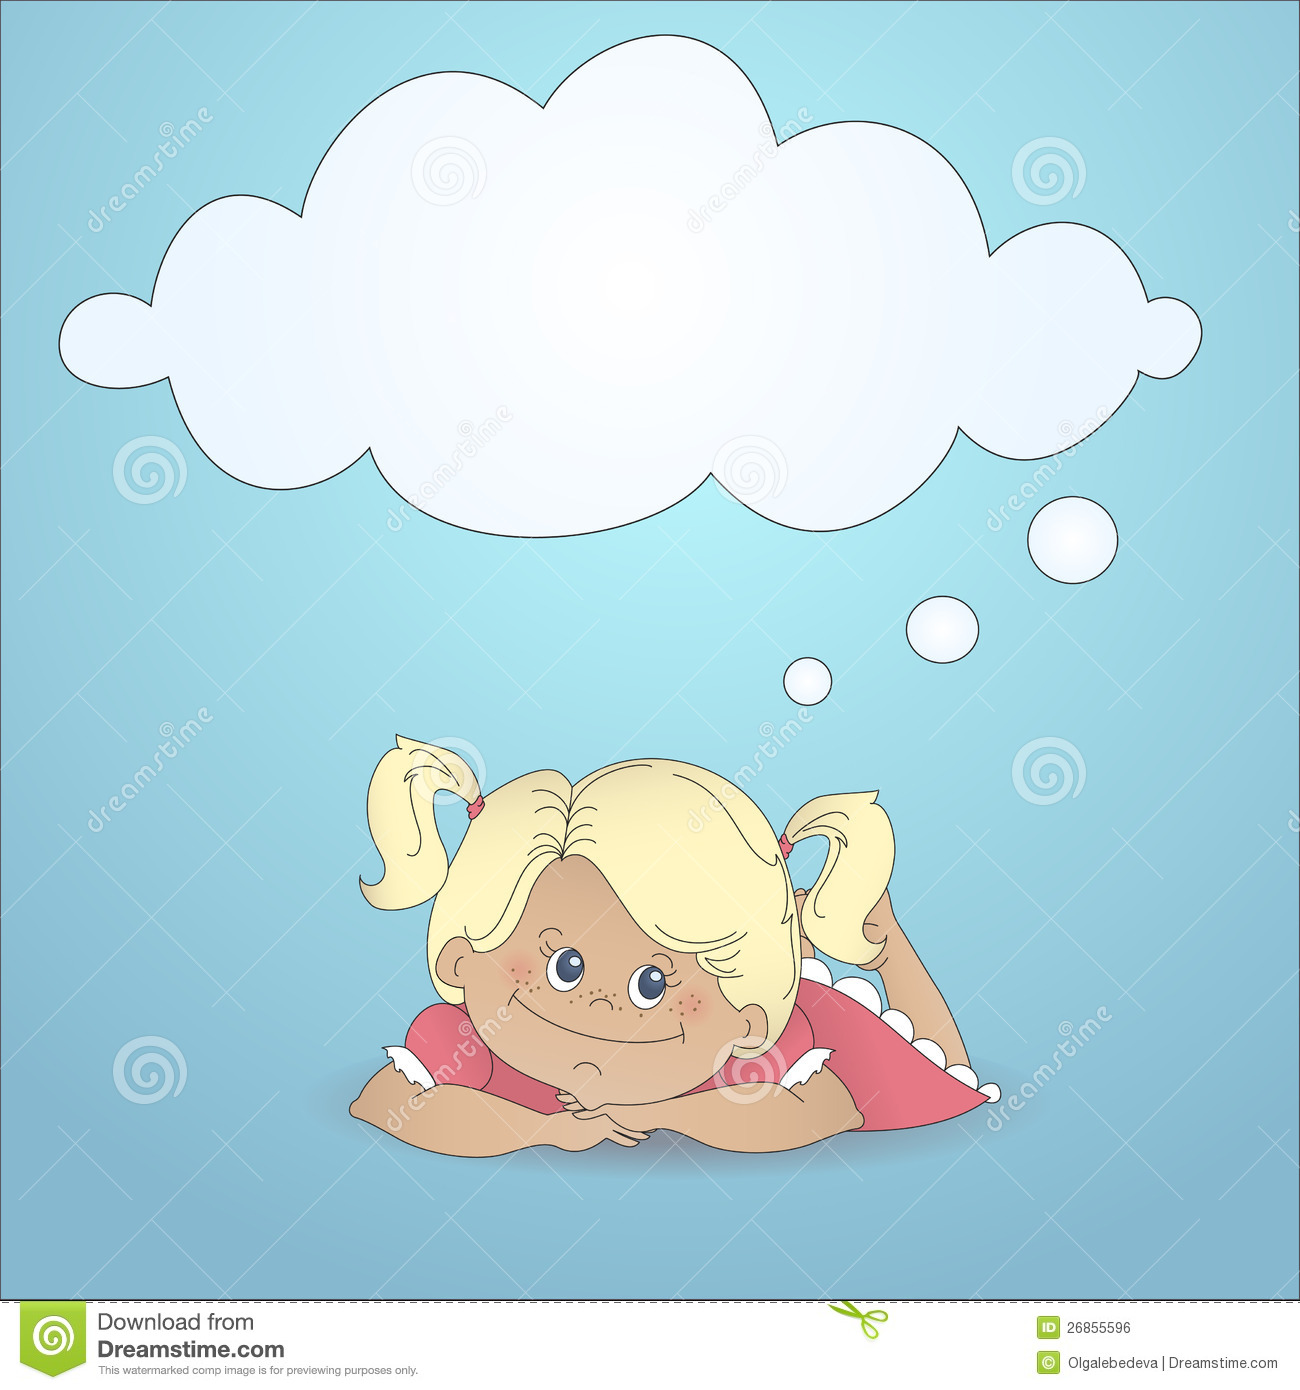 Cartoon Girl Dreaming With A Thought Bubble Royalty Free